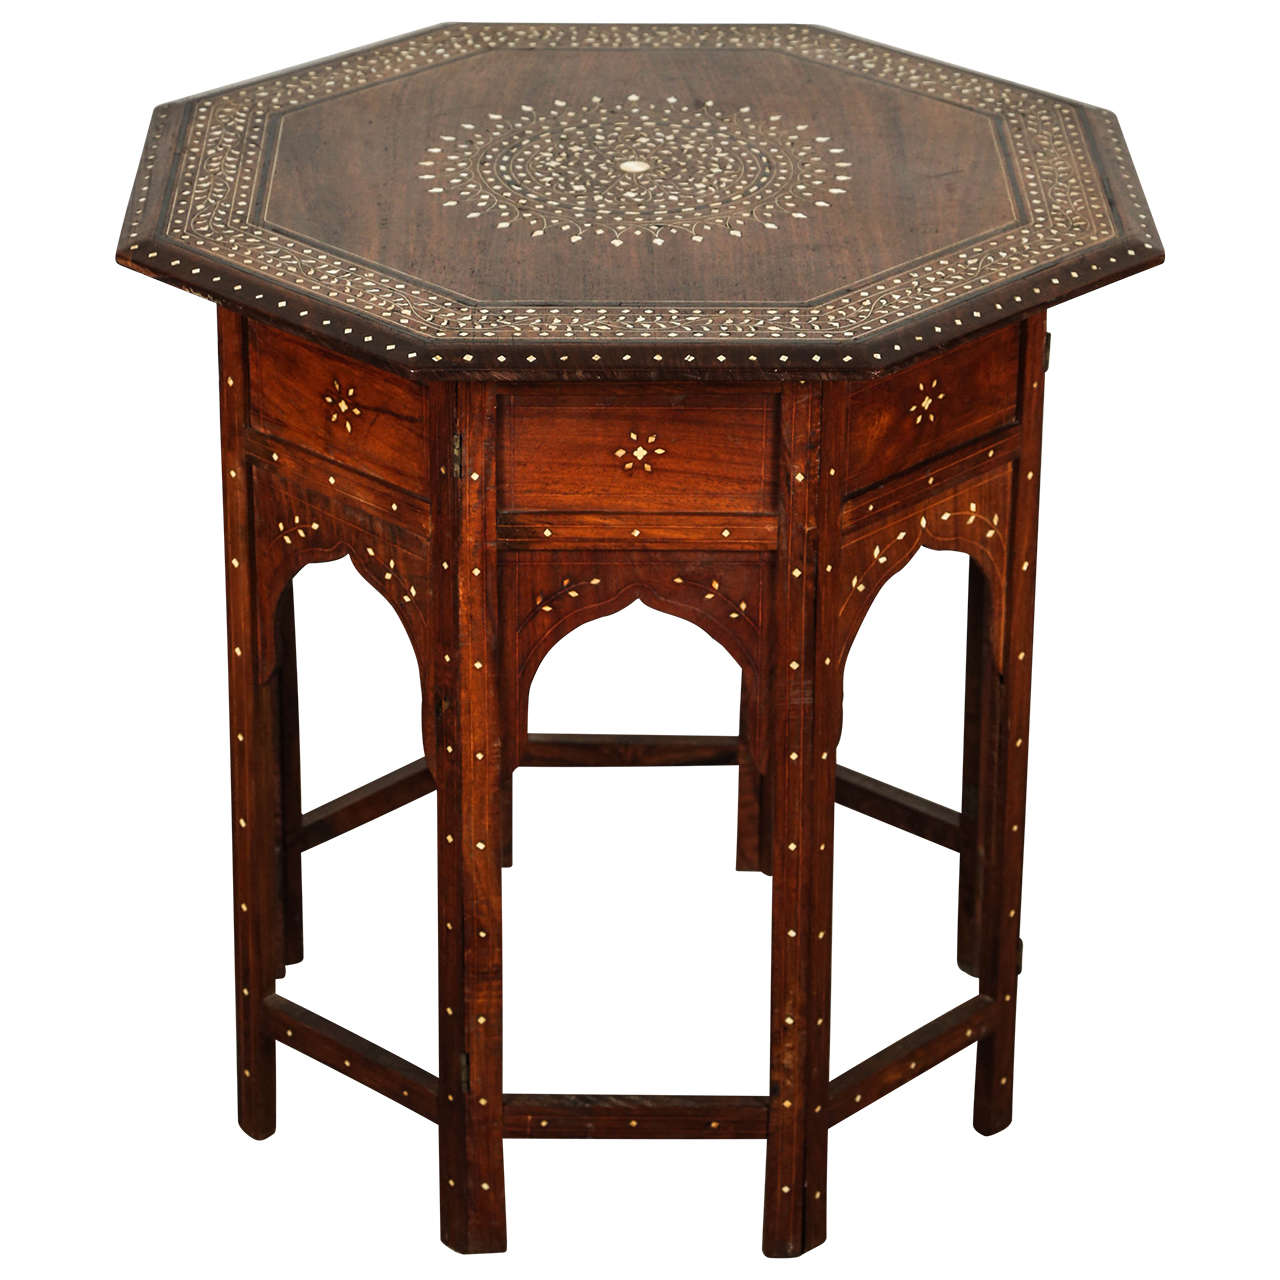 Anglo indian folding rosewood inlaid octagonal side table